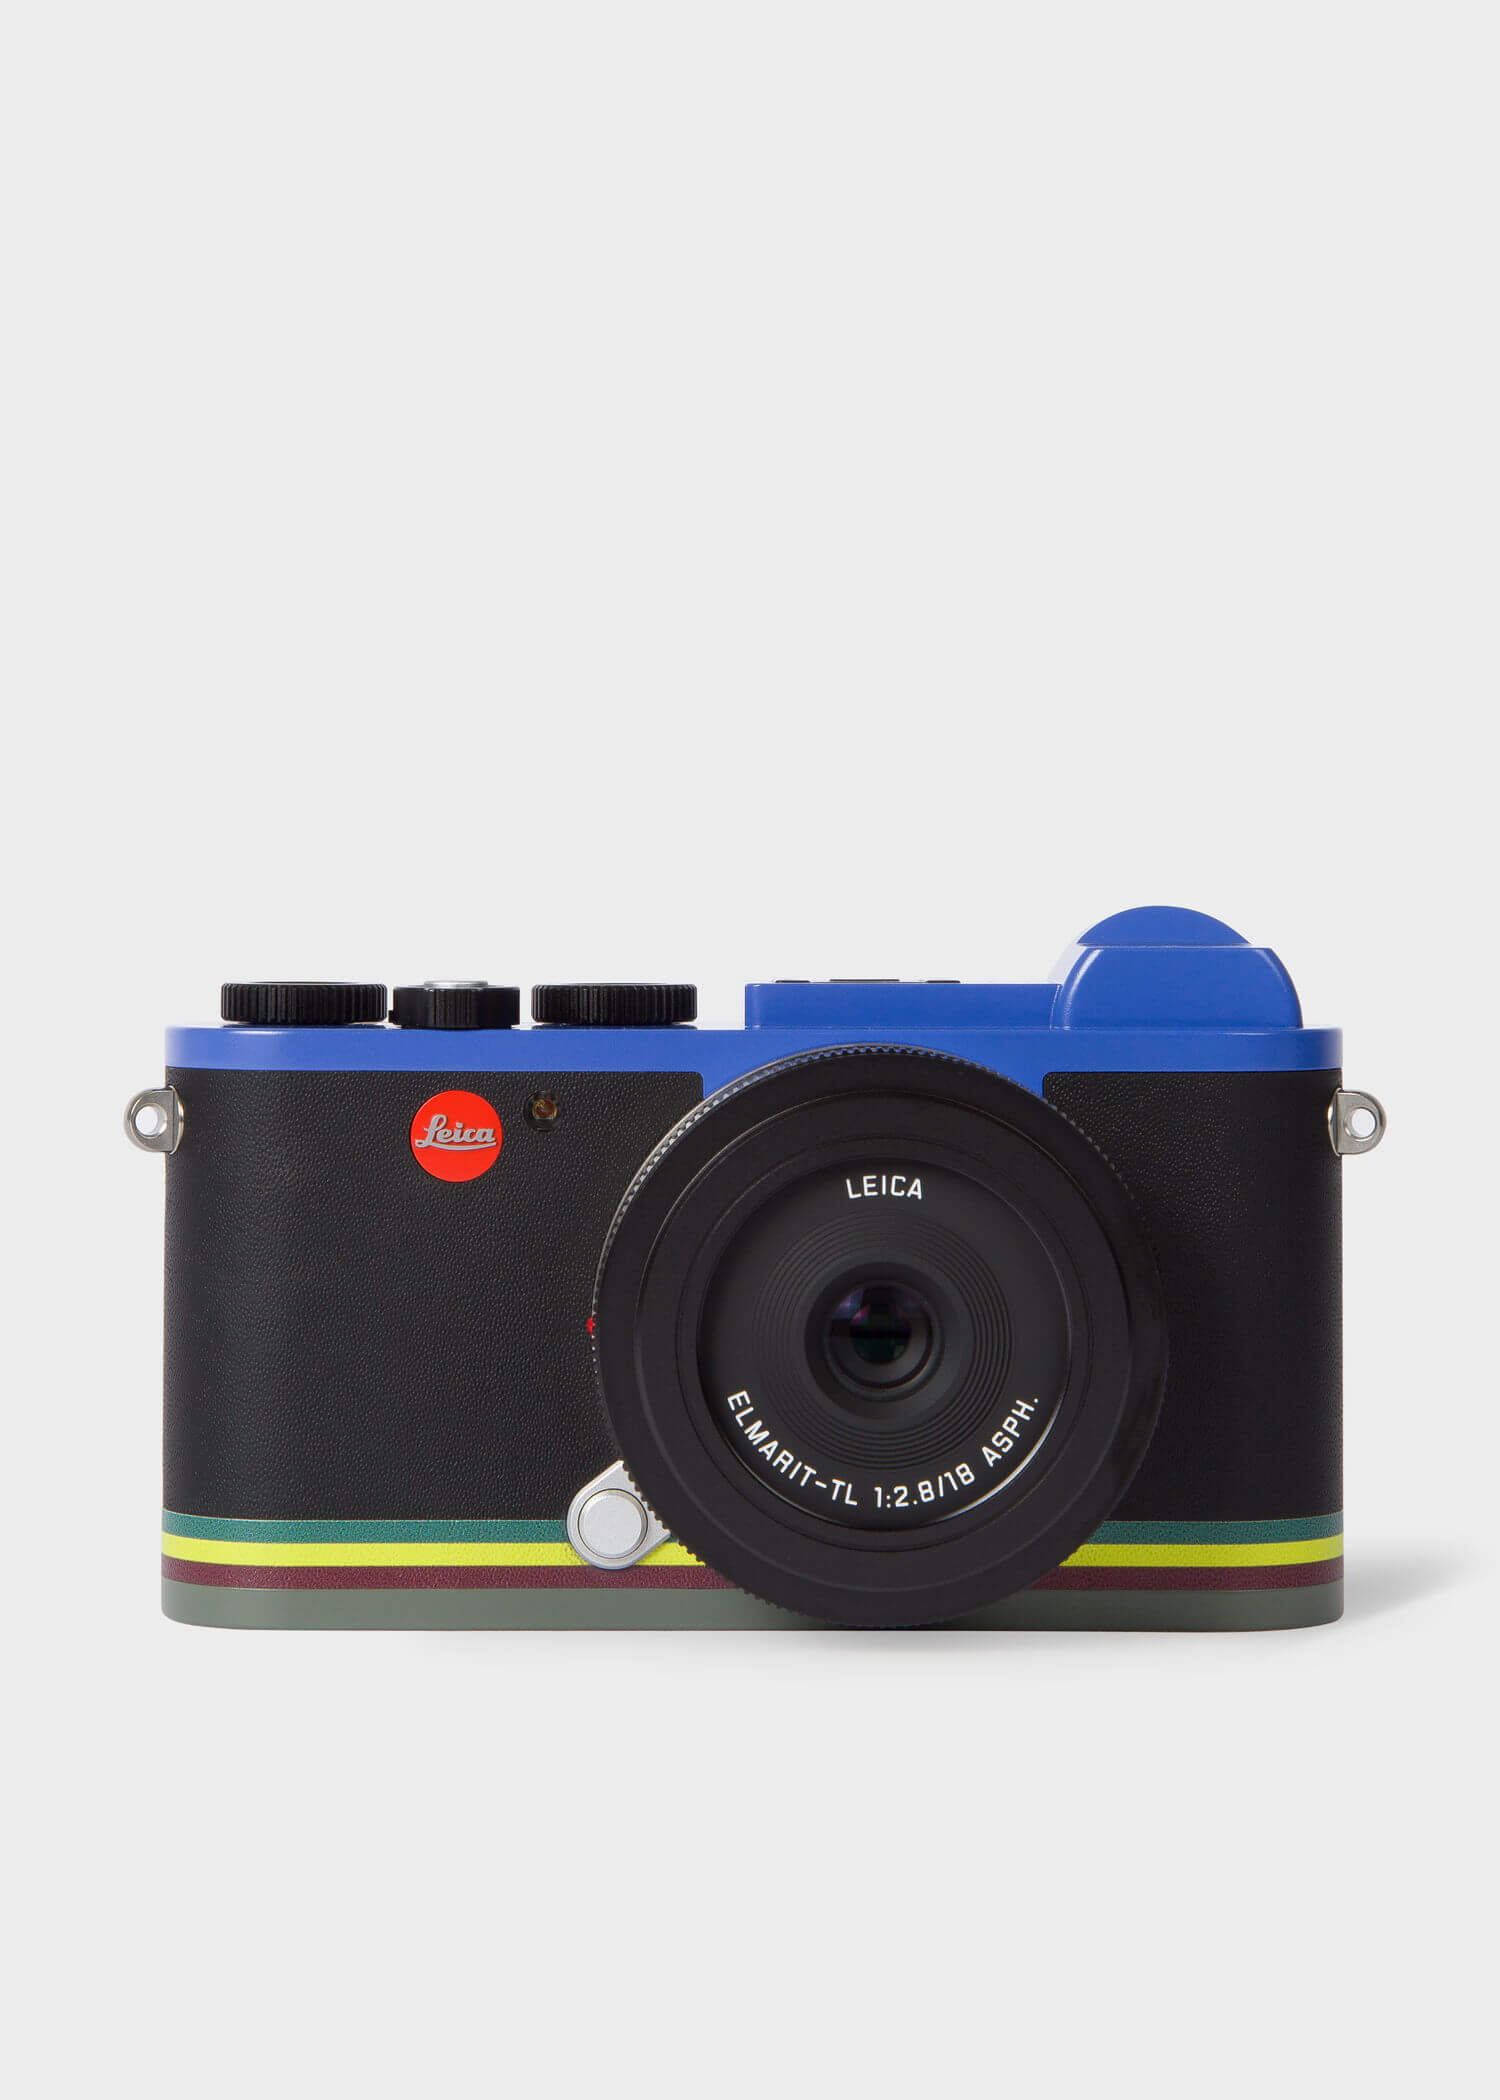 Leica CL Edition Paul Smith Mirrorless Digital Camera with 18mm Lens 2